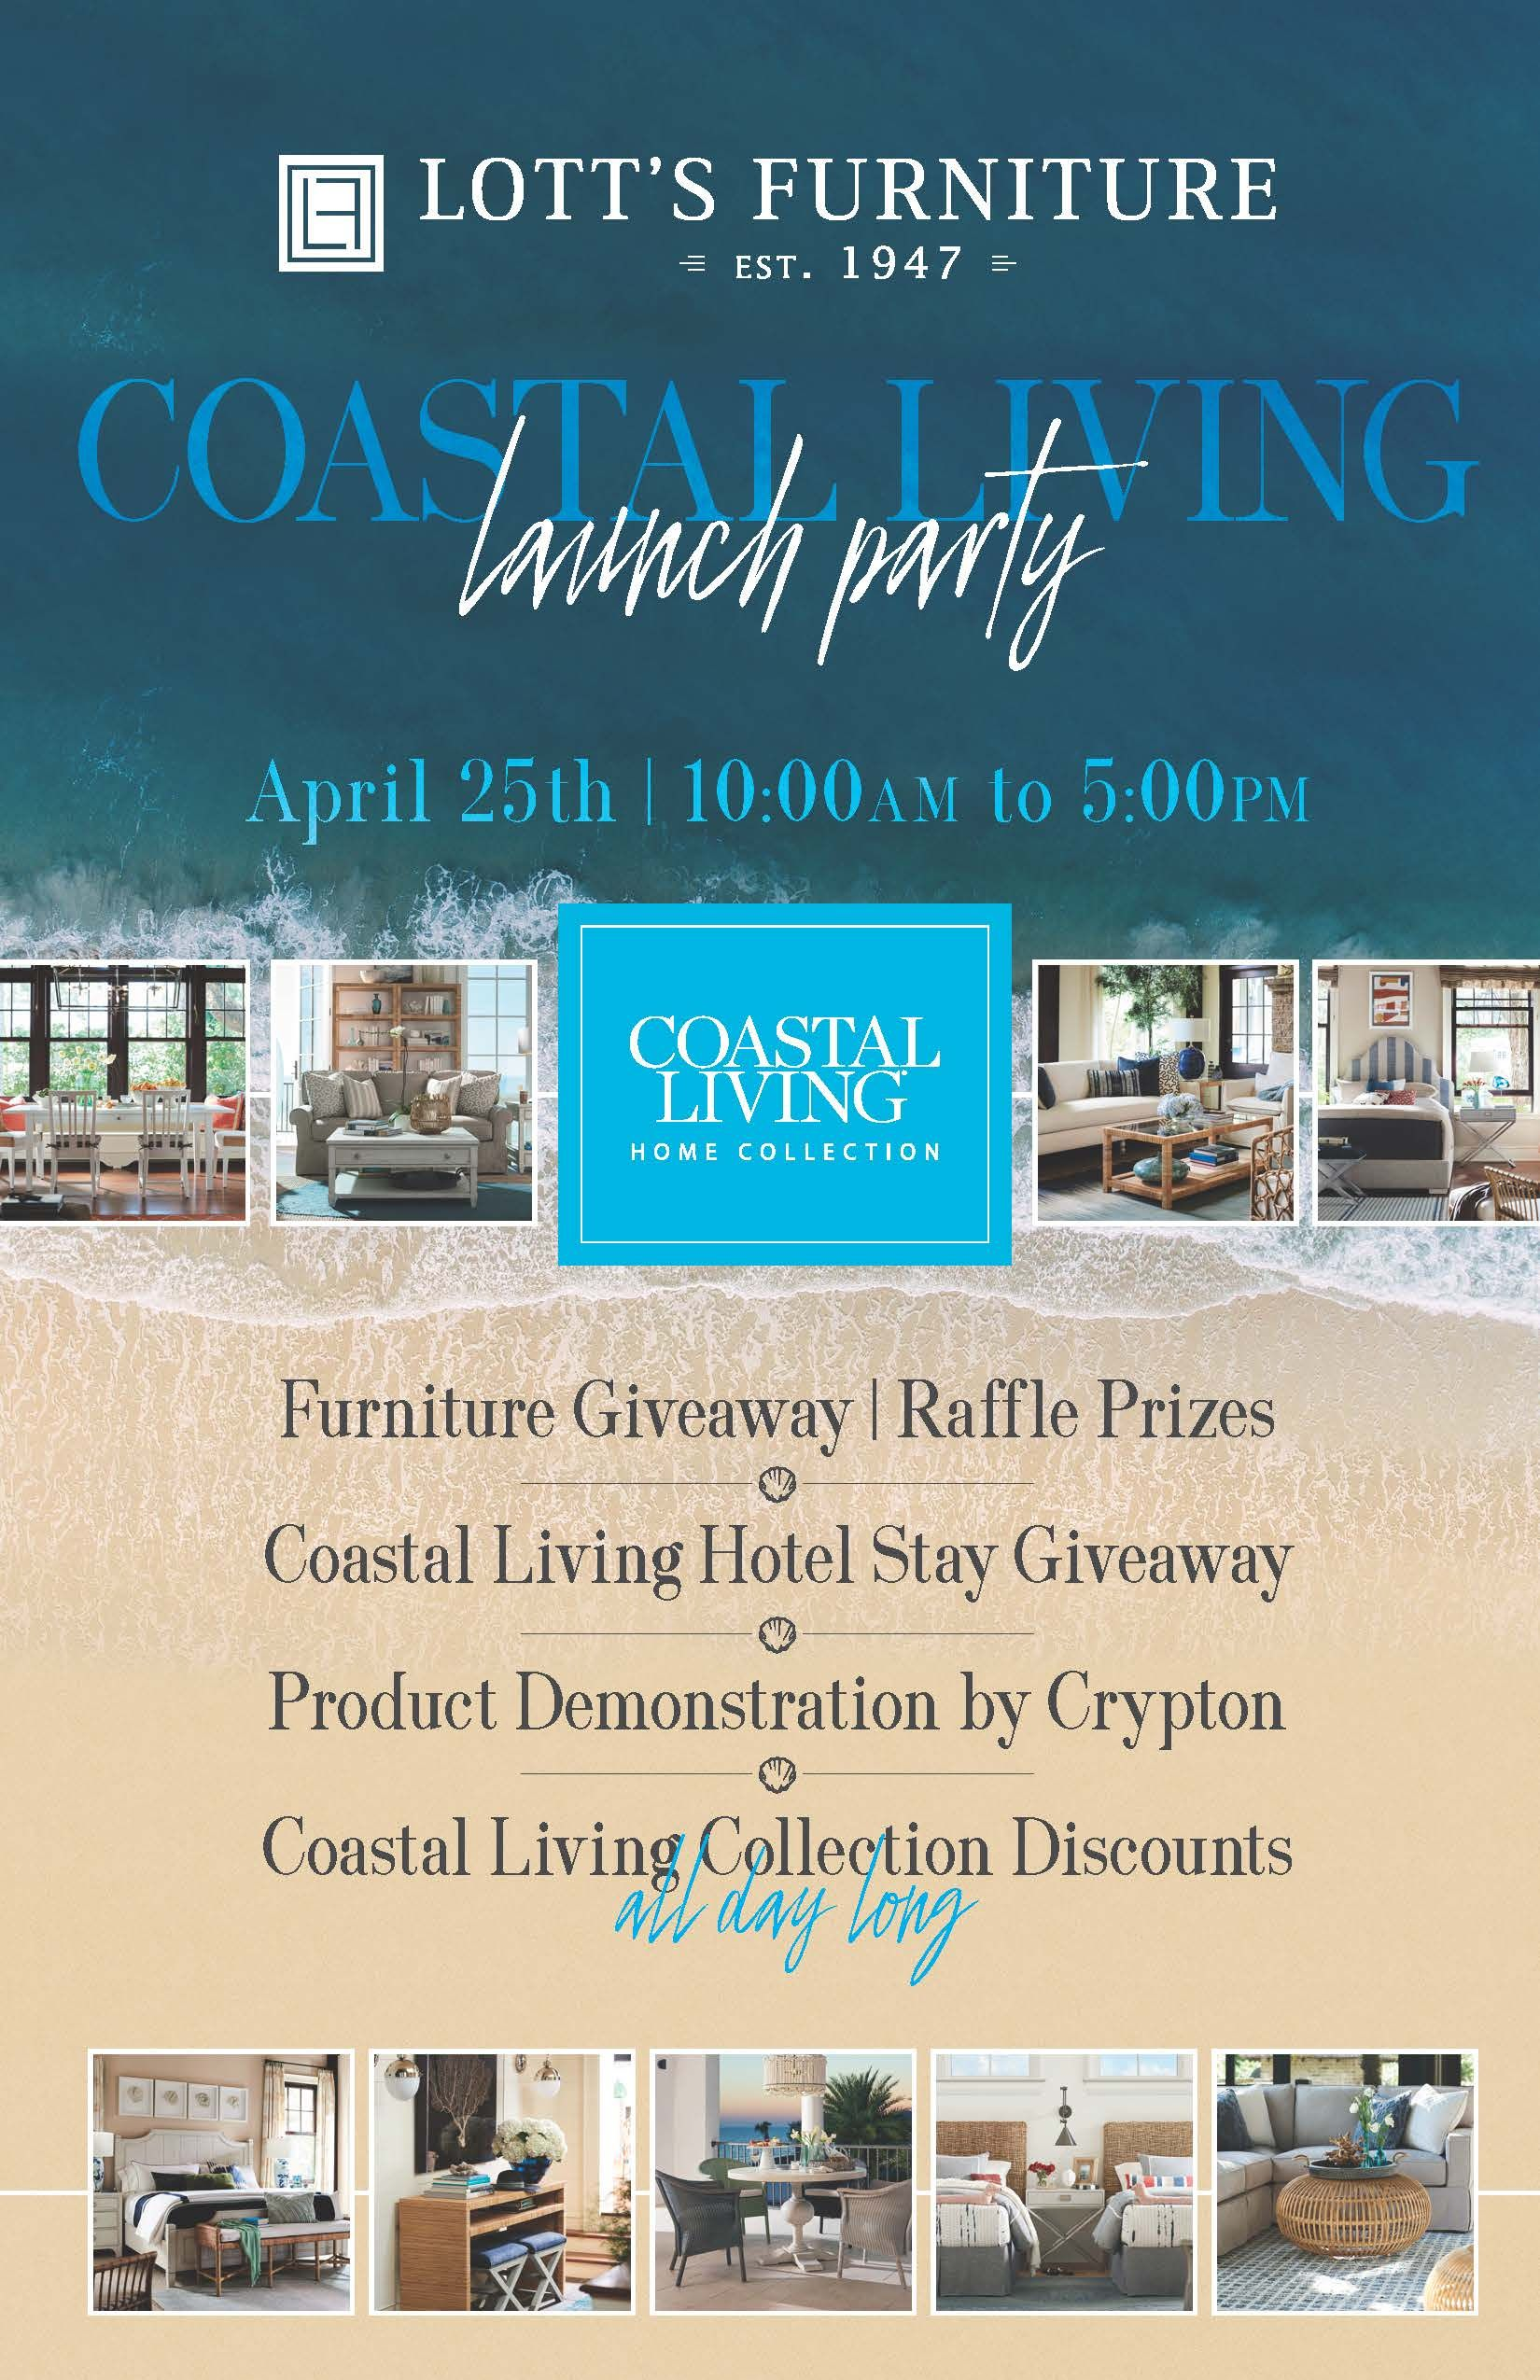 Chamber Of Commerce Amelia Island Fernandina Beach And Yulee Lott S Furniture Announces Coastal Living Event At Showroom